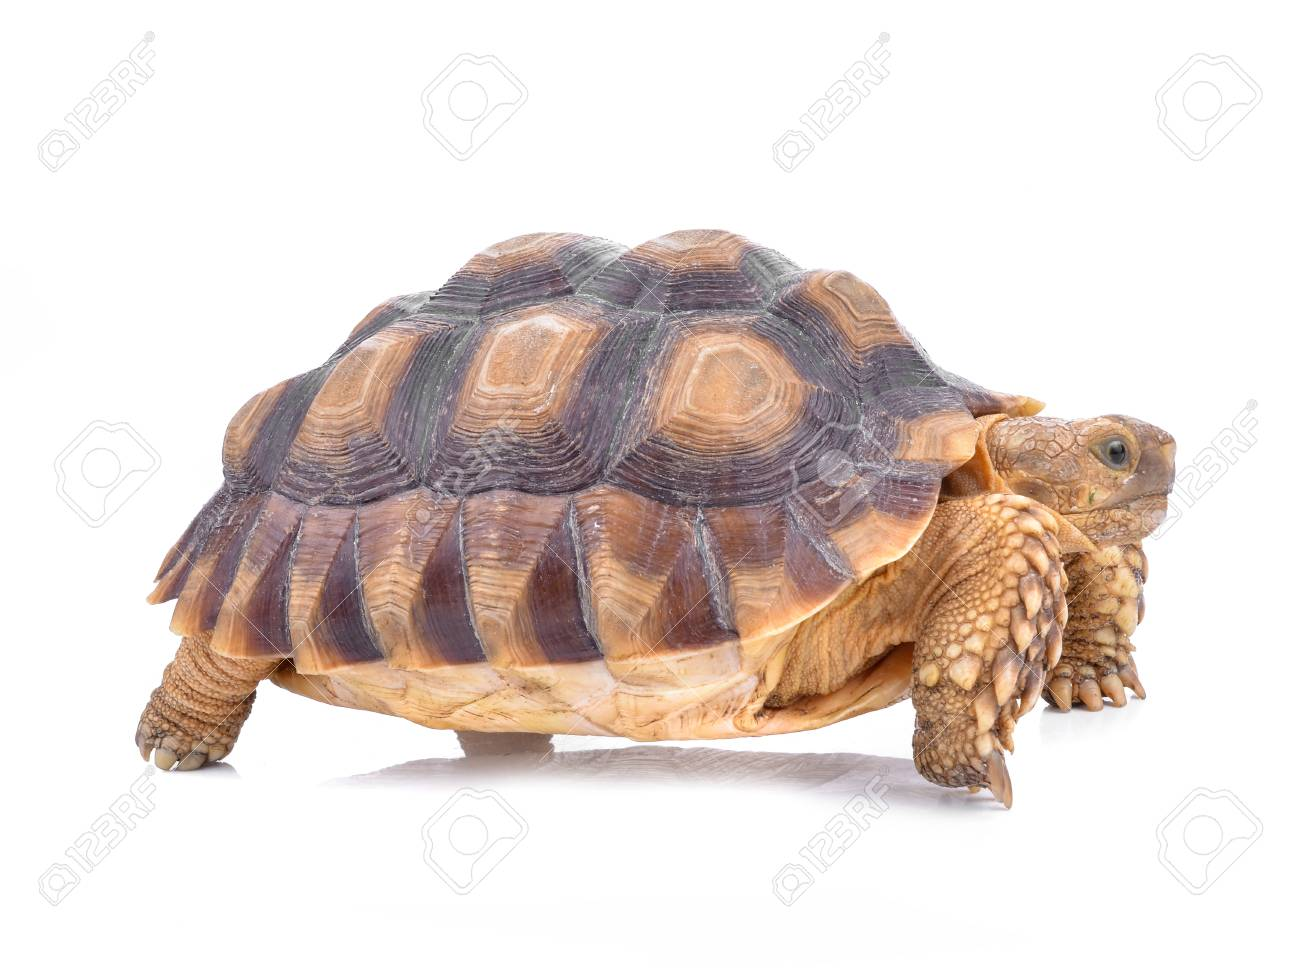 Turtles isolated on white - 95180339